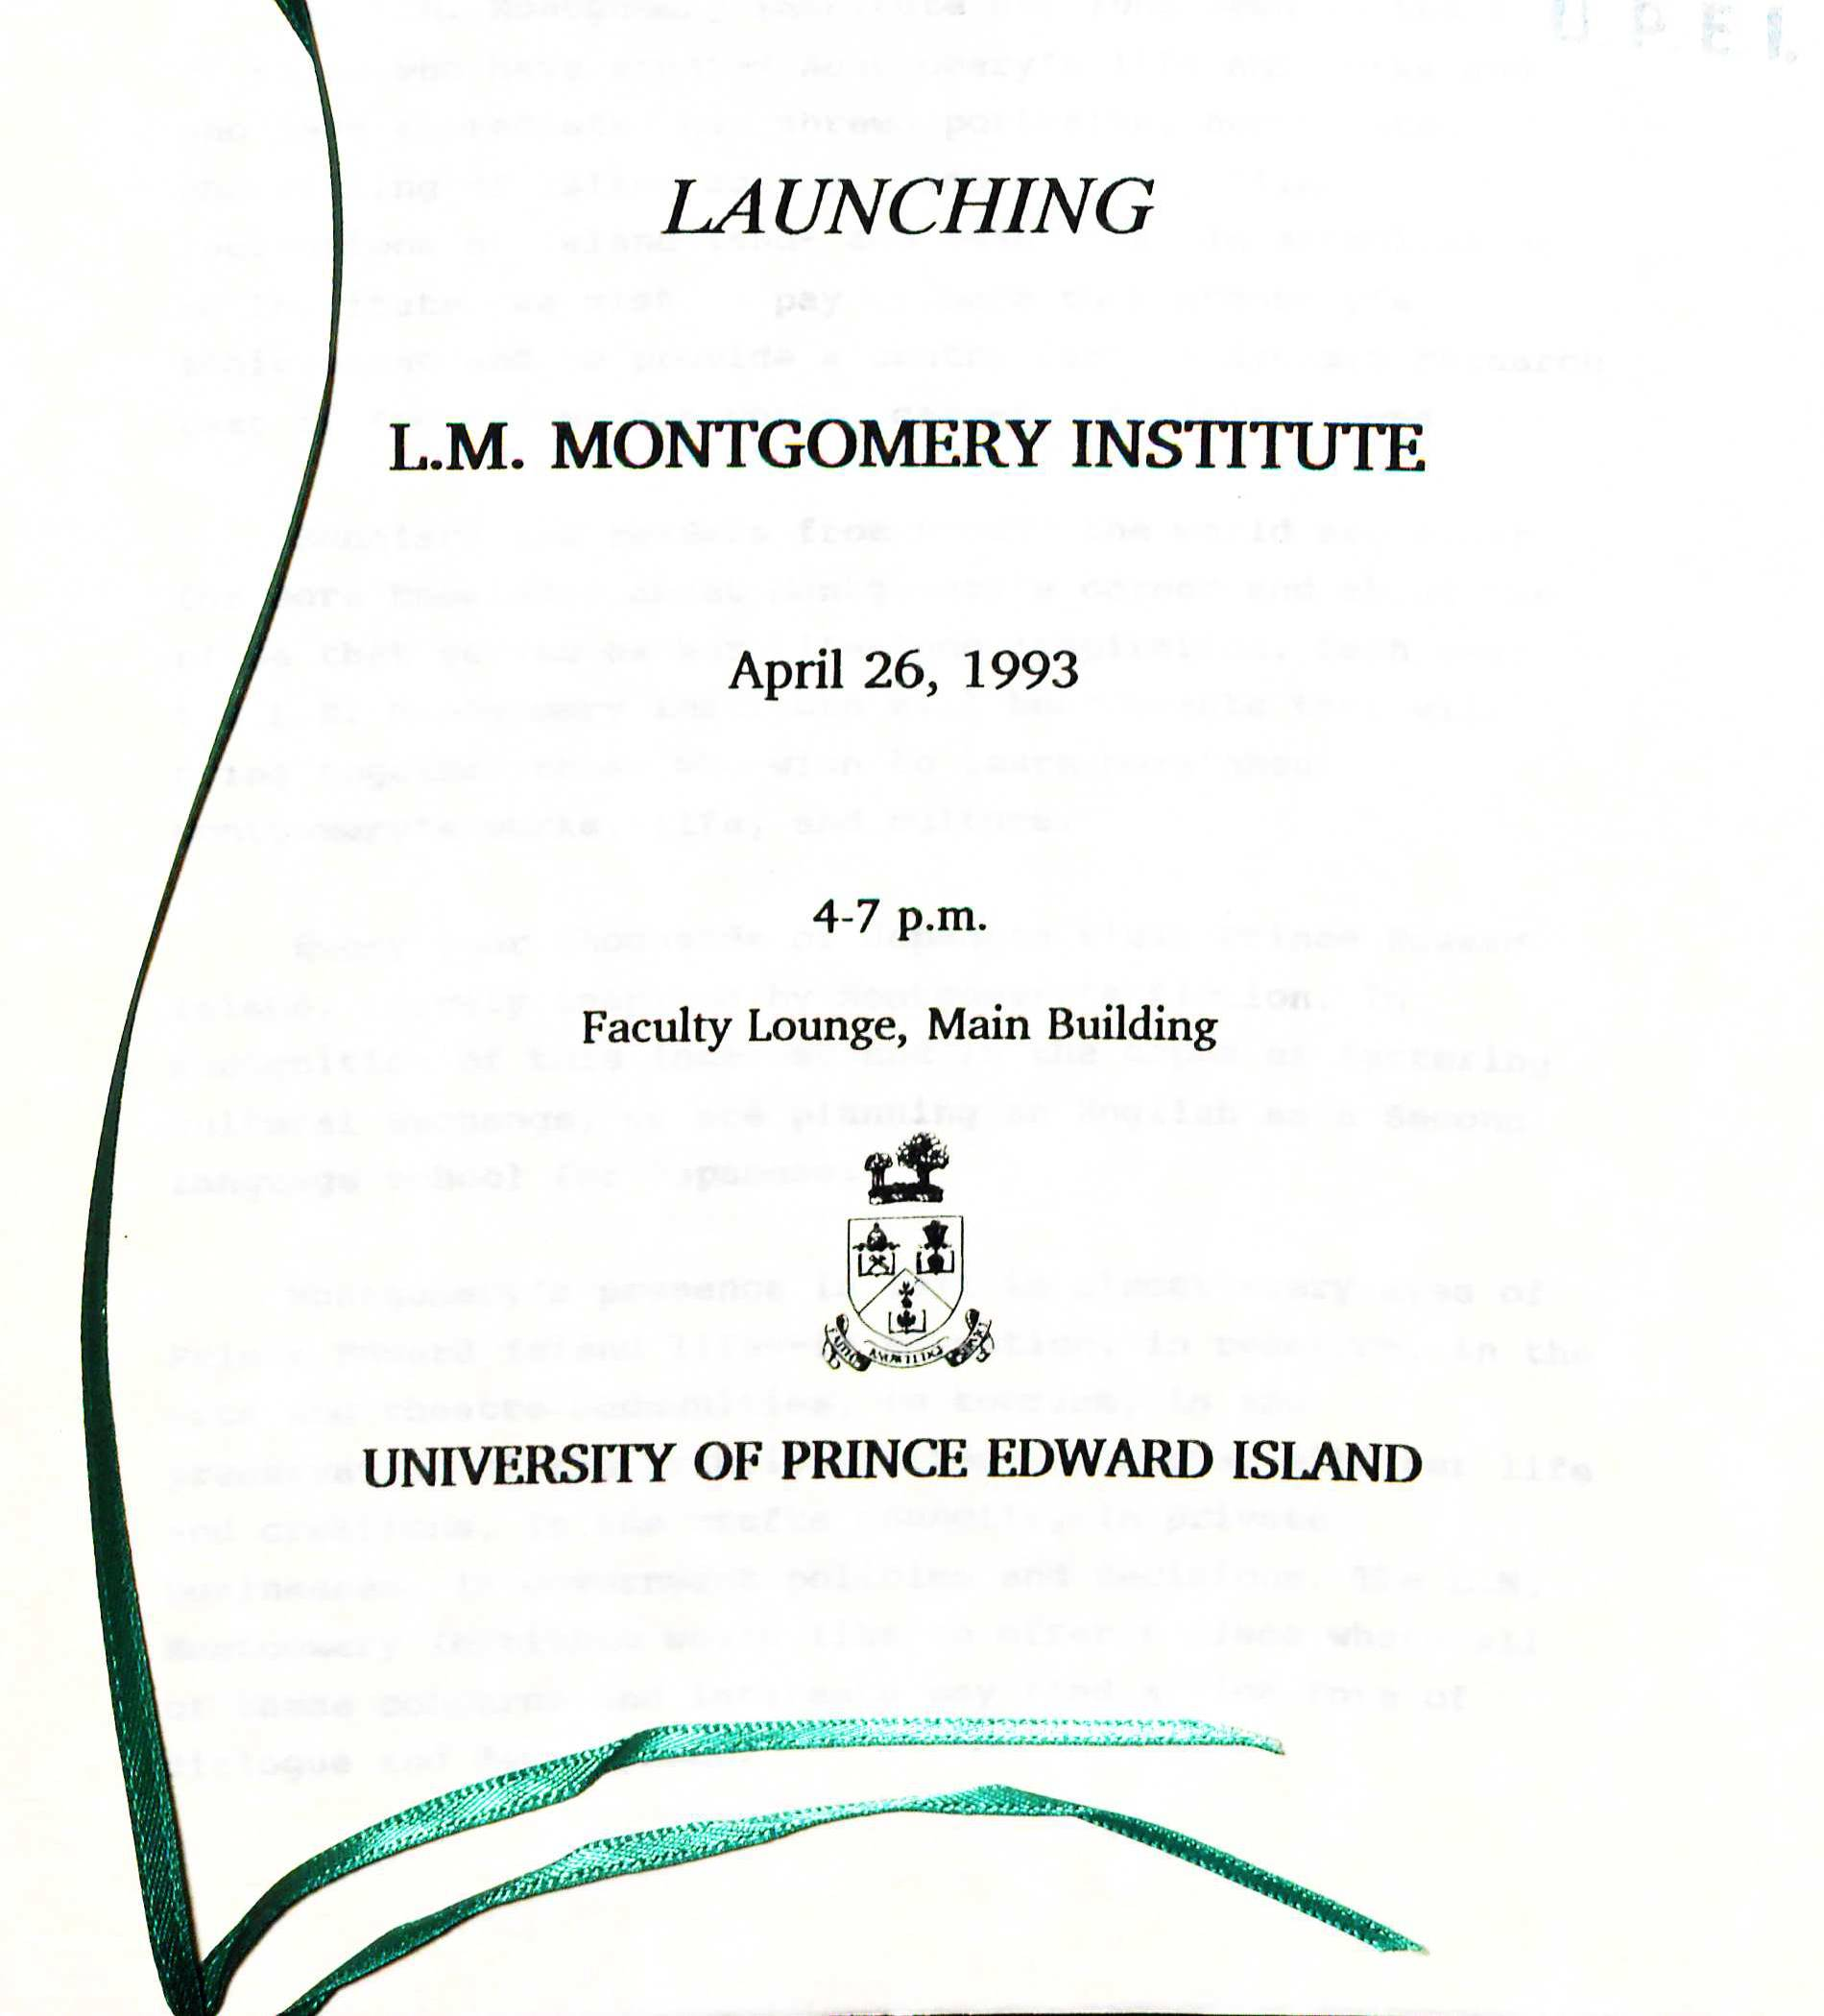 Program for the Launch of the L.M. Montgomery Institute